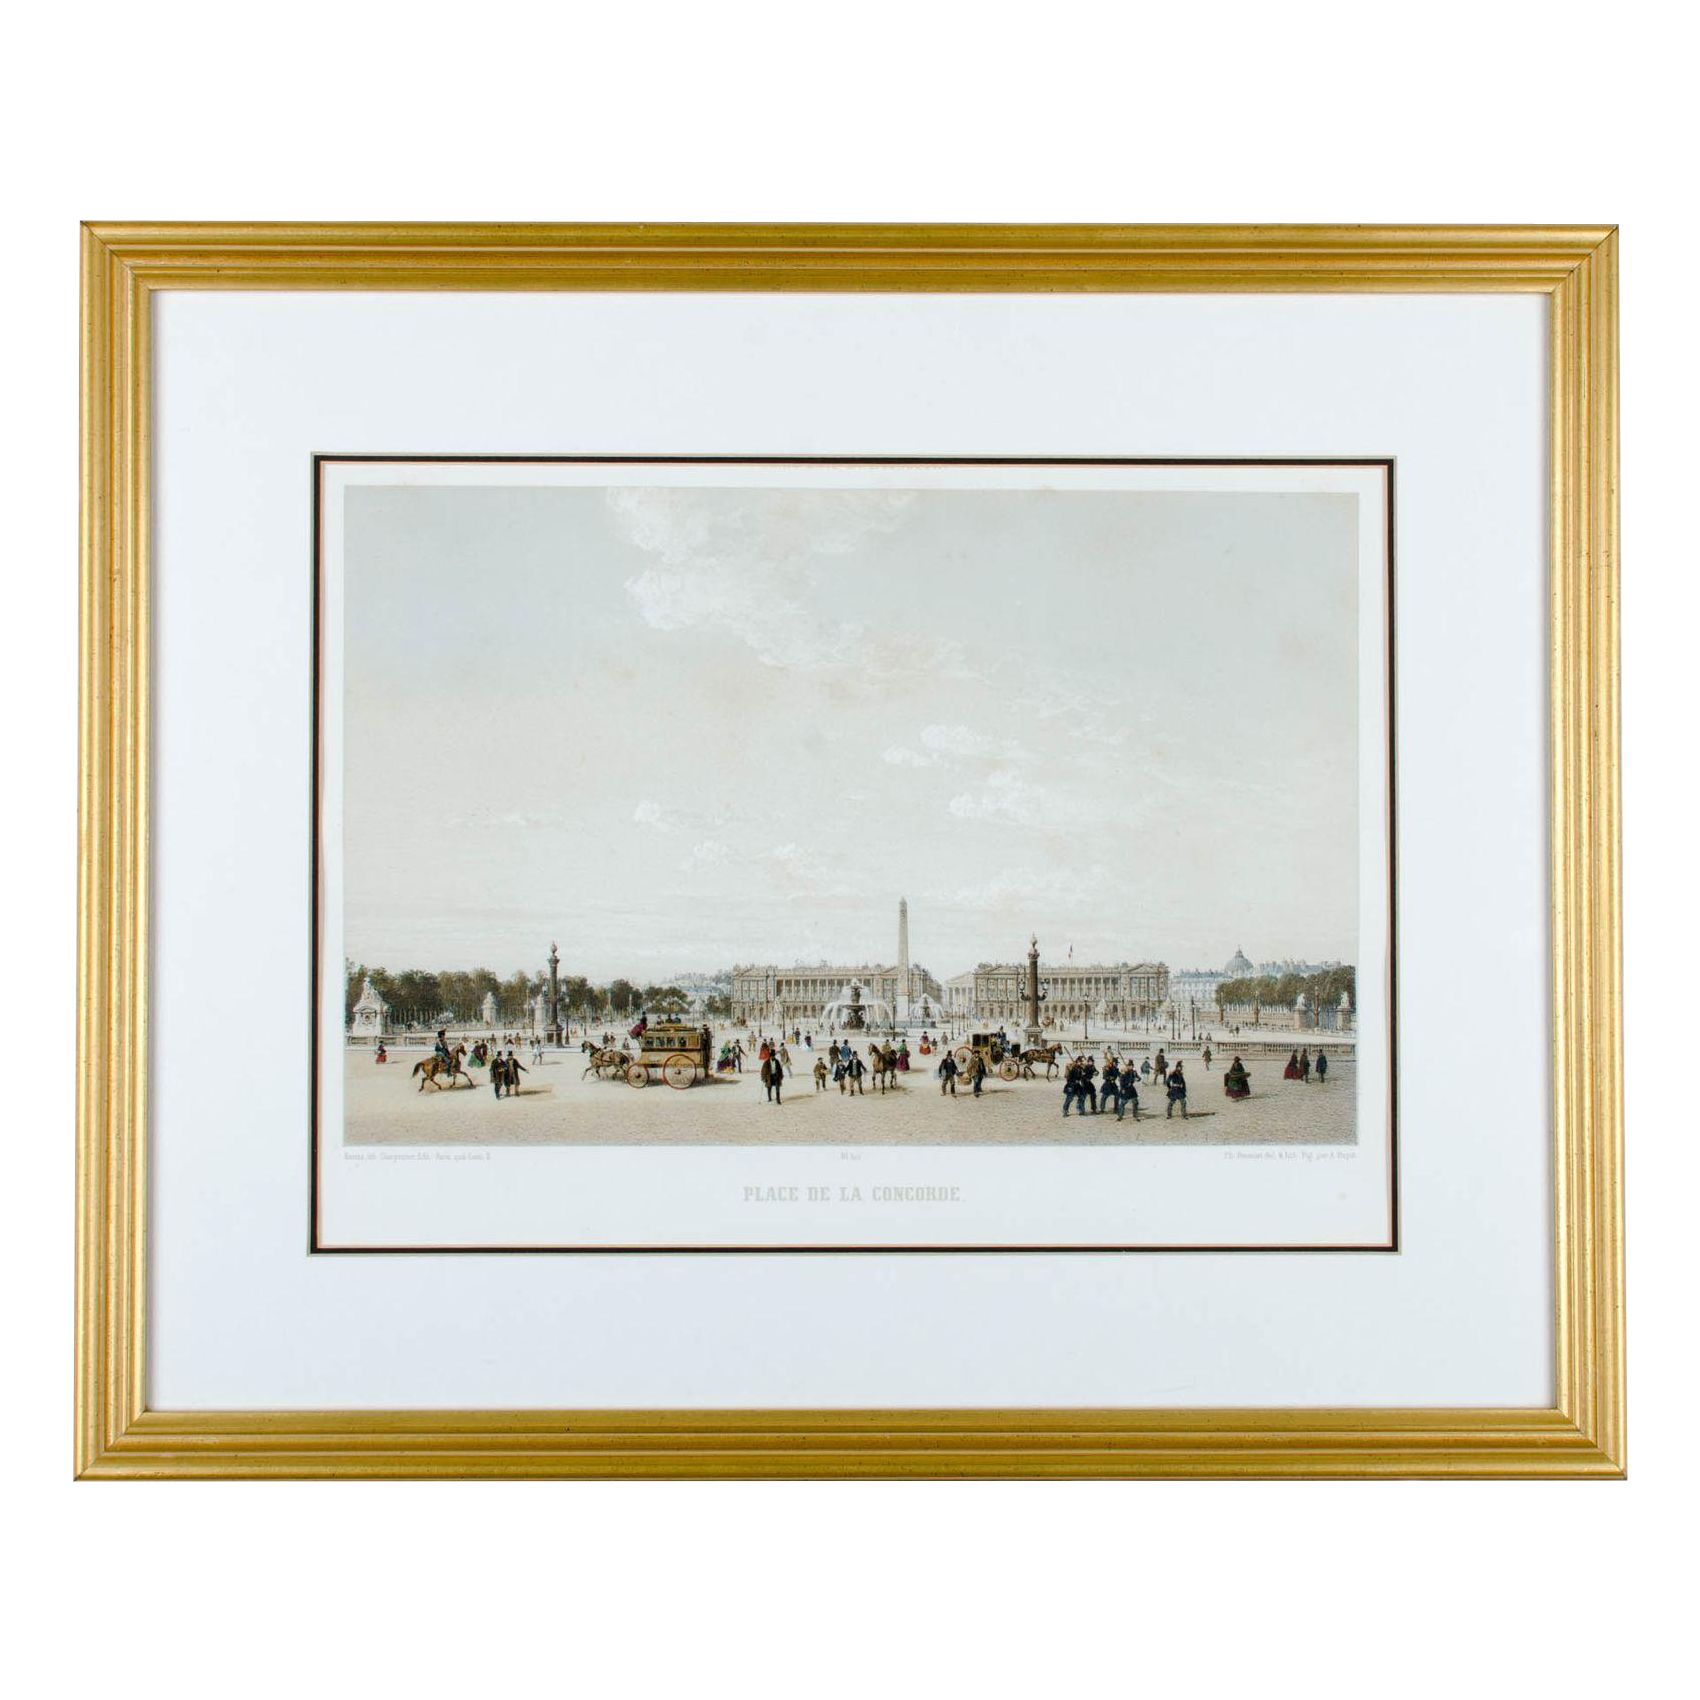 Quot Place De La Concorde Paris Quot By Philippe Benoist Chairish